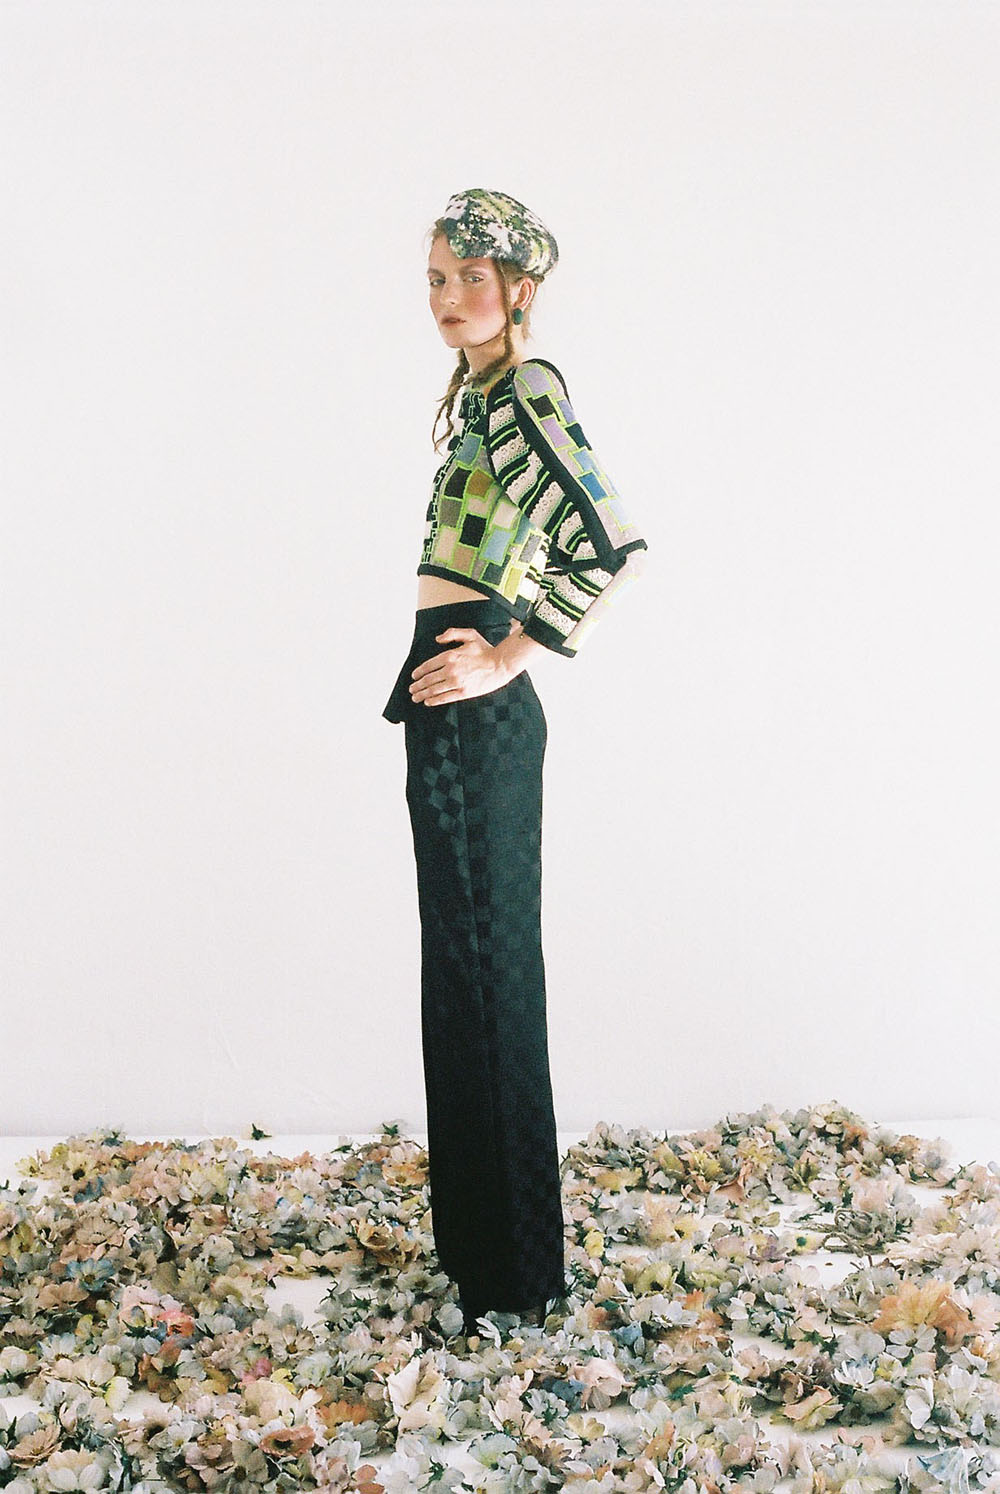 PHOENIX MAGAZINE Top NOVA CHIU, Trousers ANDREW MAJTENYI, Shoes BERNARD, Earrings MCL Jewellery, Hat E WHA LIM